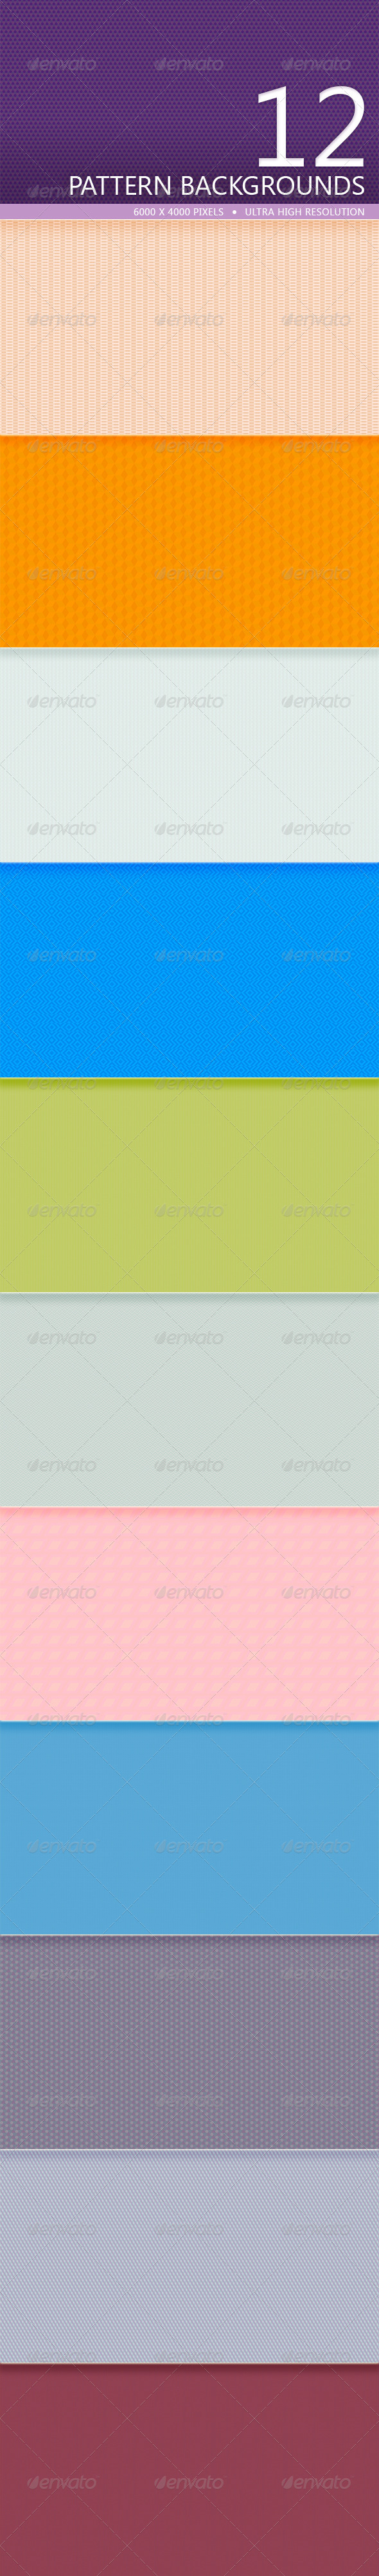 GraphicRiver Pattern Backgrounds Volume 1 5220947